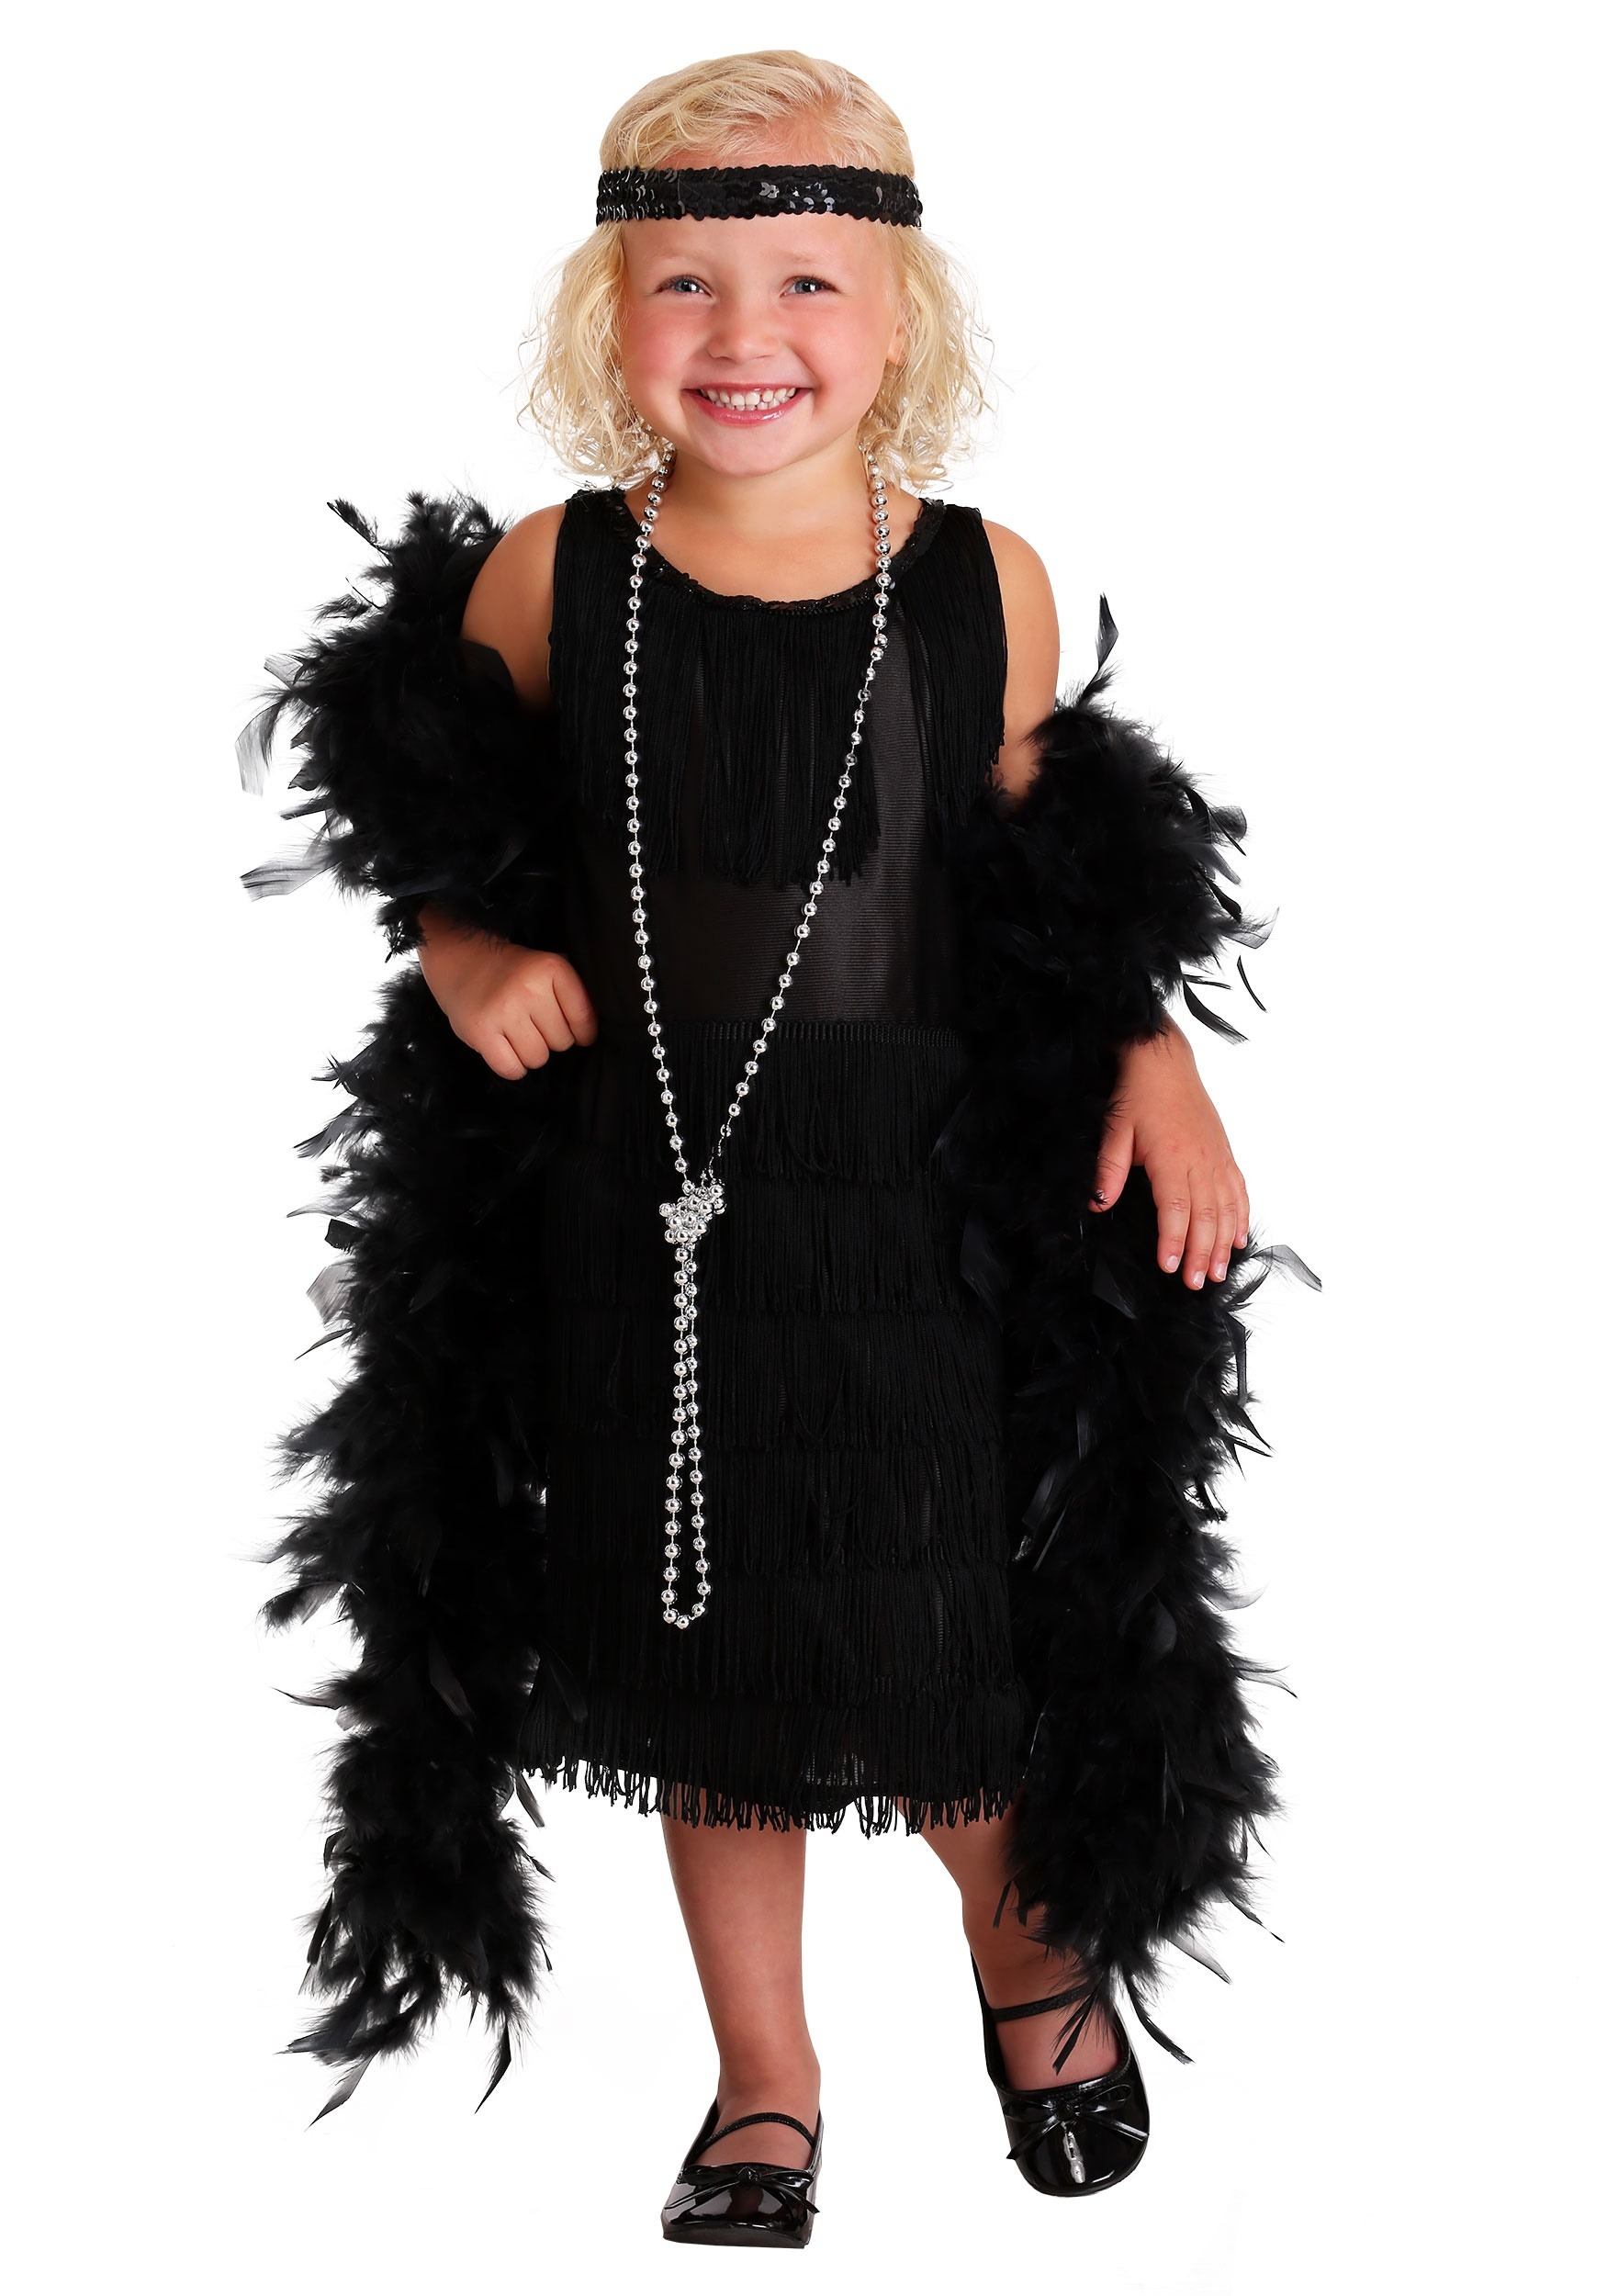 Child Flapper Costumes - Kids Flapper Style Costume Dress